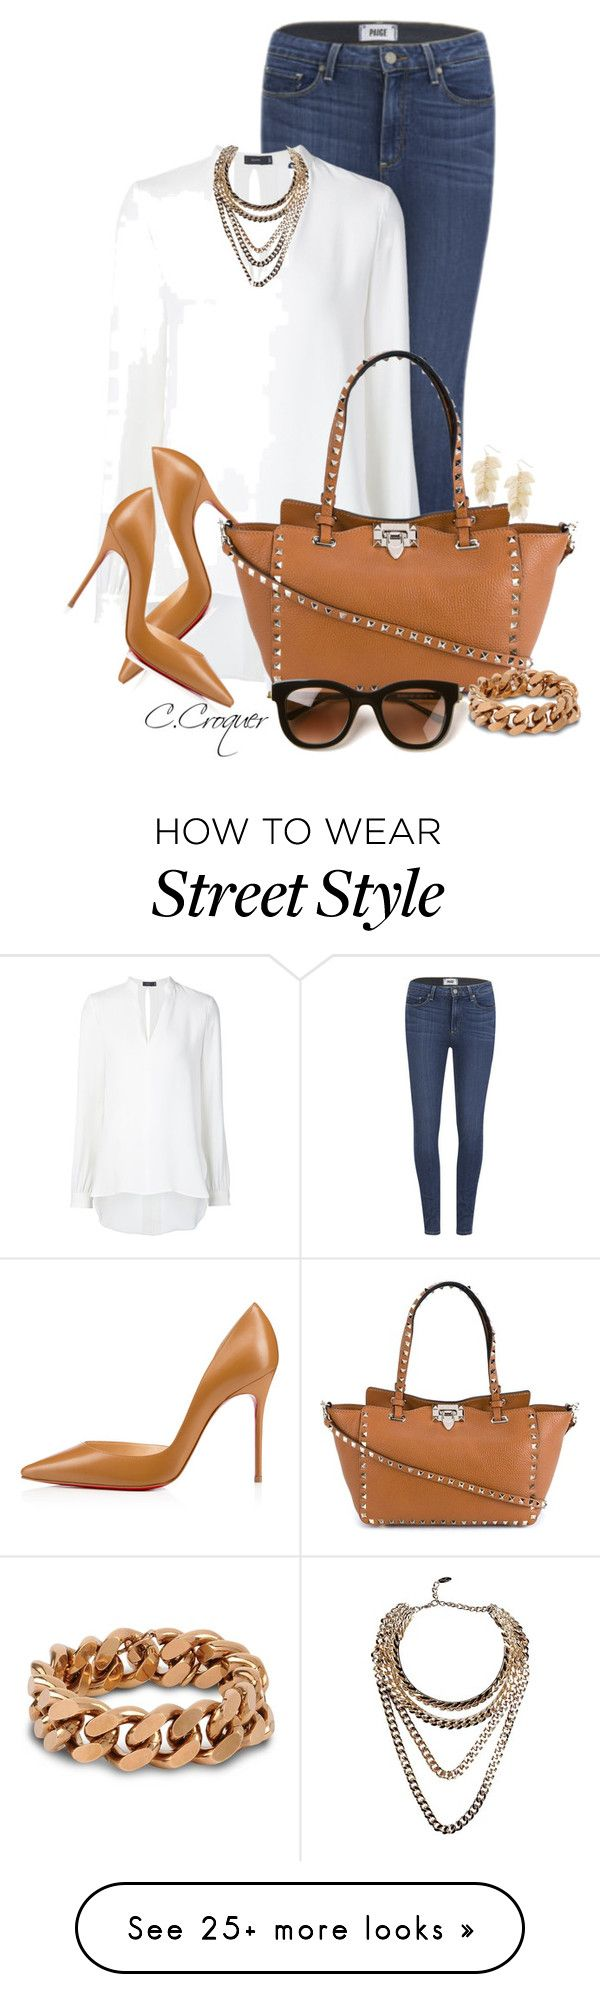 """Chic Street Style. The Sweetest Thing Inspired"" by ccroquer on Polyvore featuring Paige Denim, Joseph, Christian Louboutin, Valentino, Thierry Lasry, Giuseppe Zanotti and STELLA McCARTNEY"